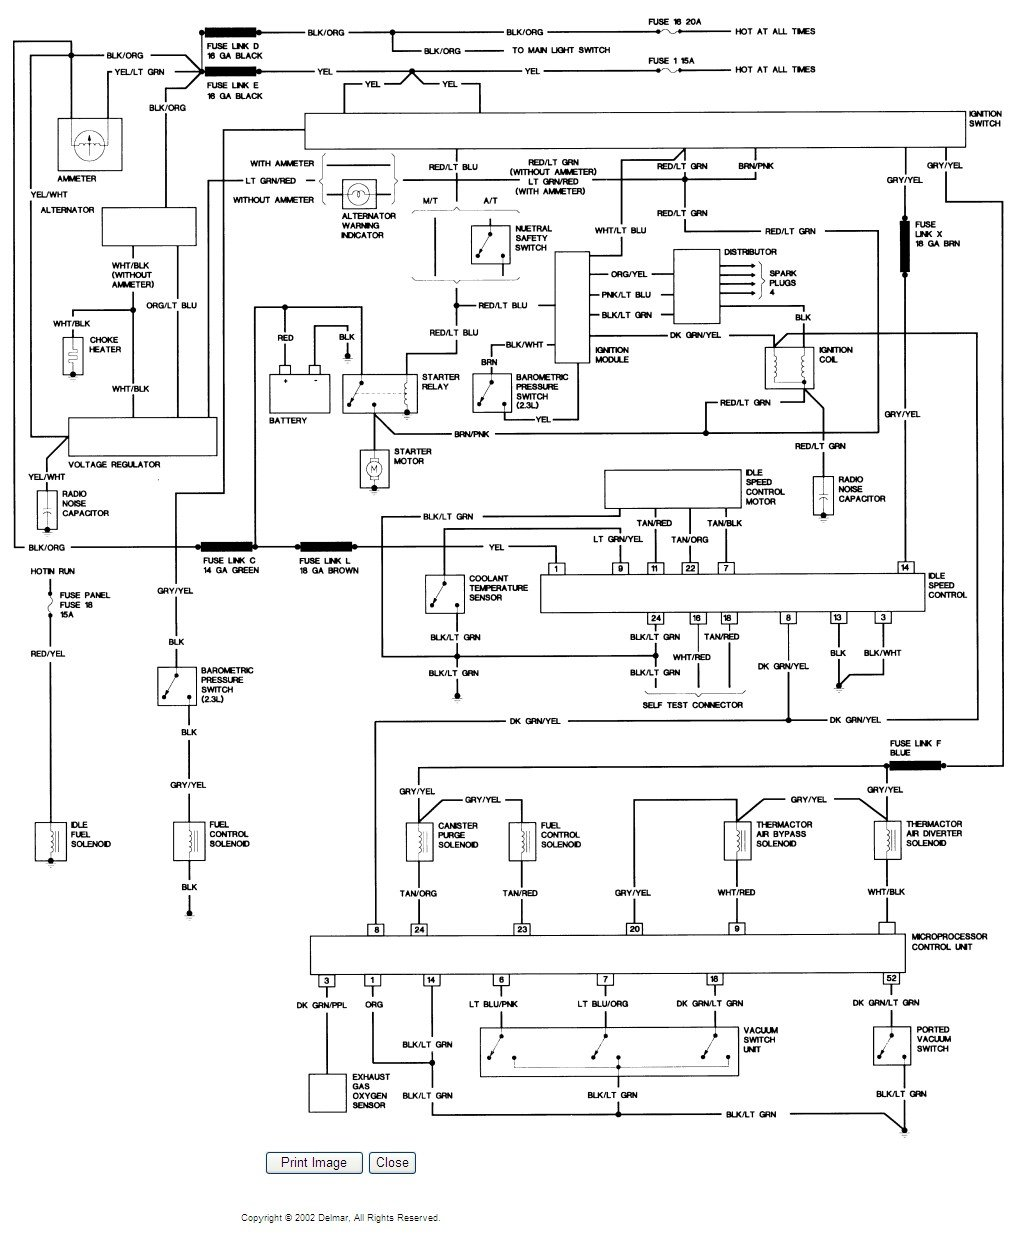 2008 04 03_001016_85_ranger_wiring_diagram i need the electrical wiring diagram for a 1985 ford ranger i am 2008 ford ranger electrical wiring diagram at bayanpartner.co